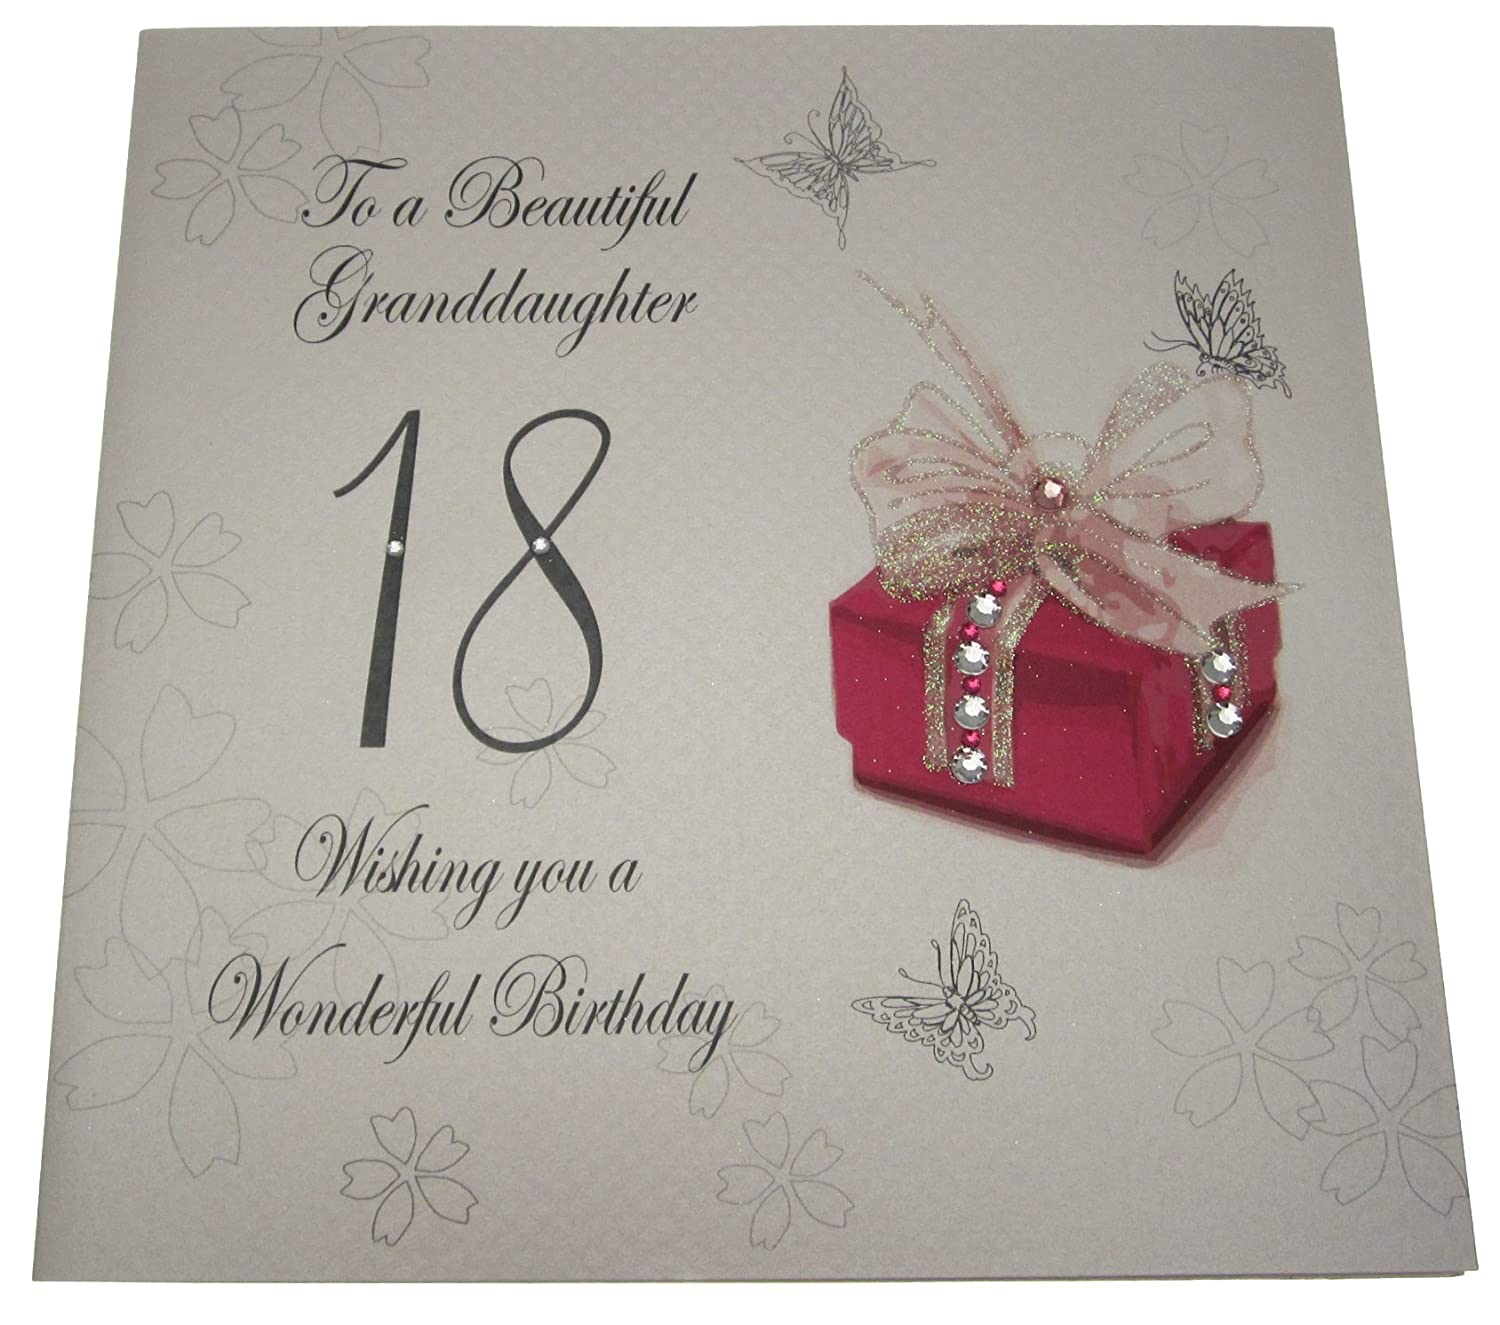 white cotton cards Granddaughter Handmade 18th Birthday Card – Handmade 18th Birthday Card